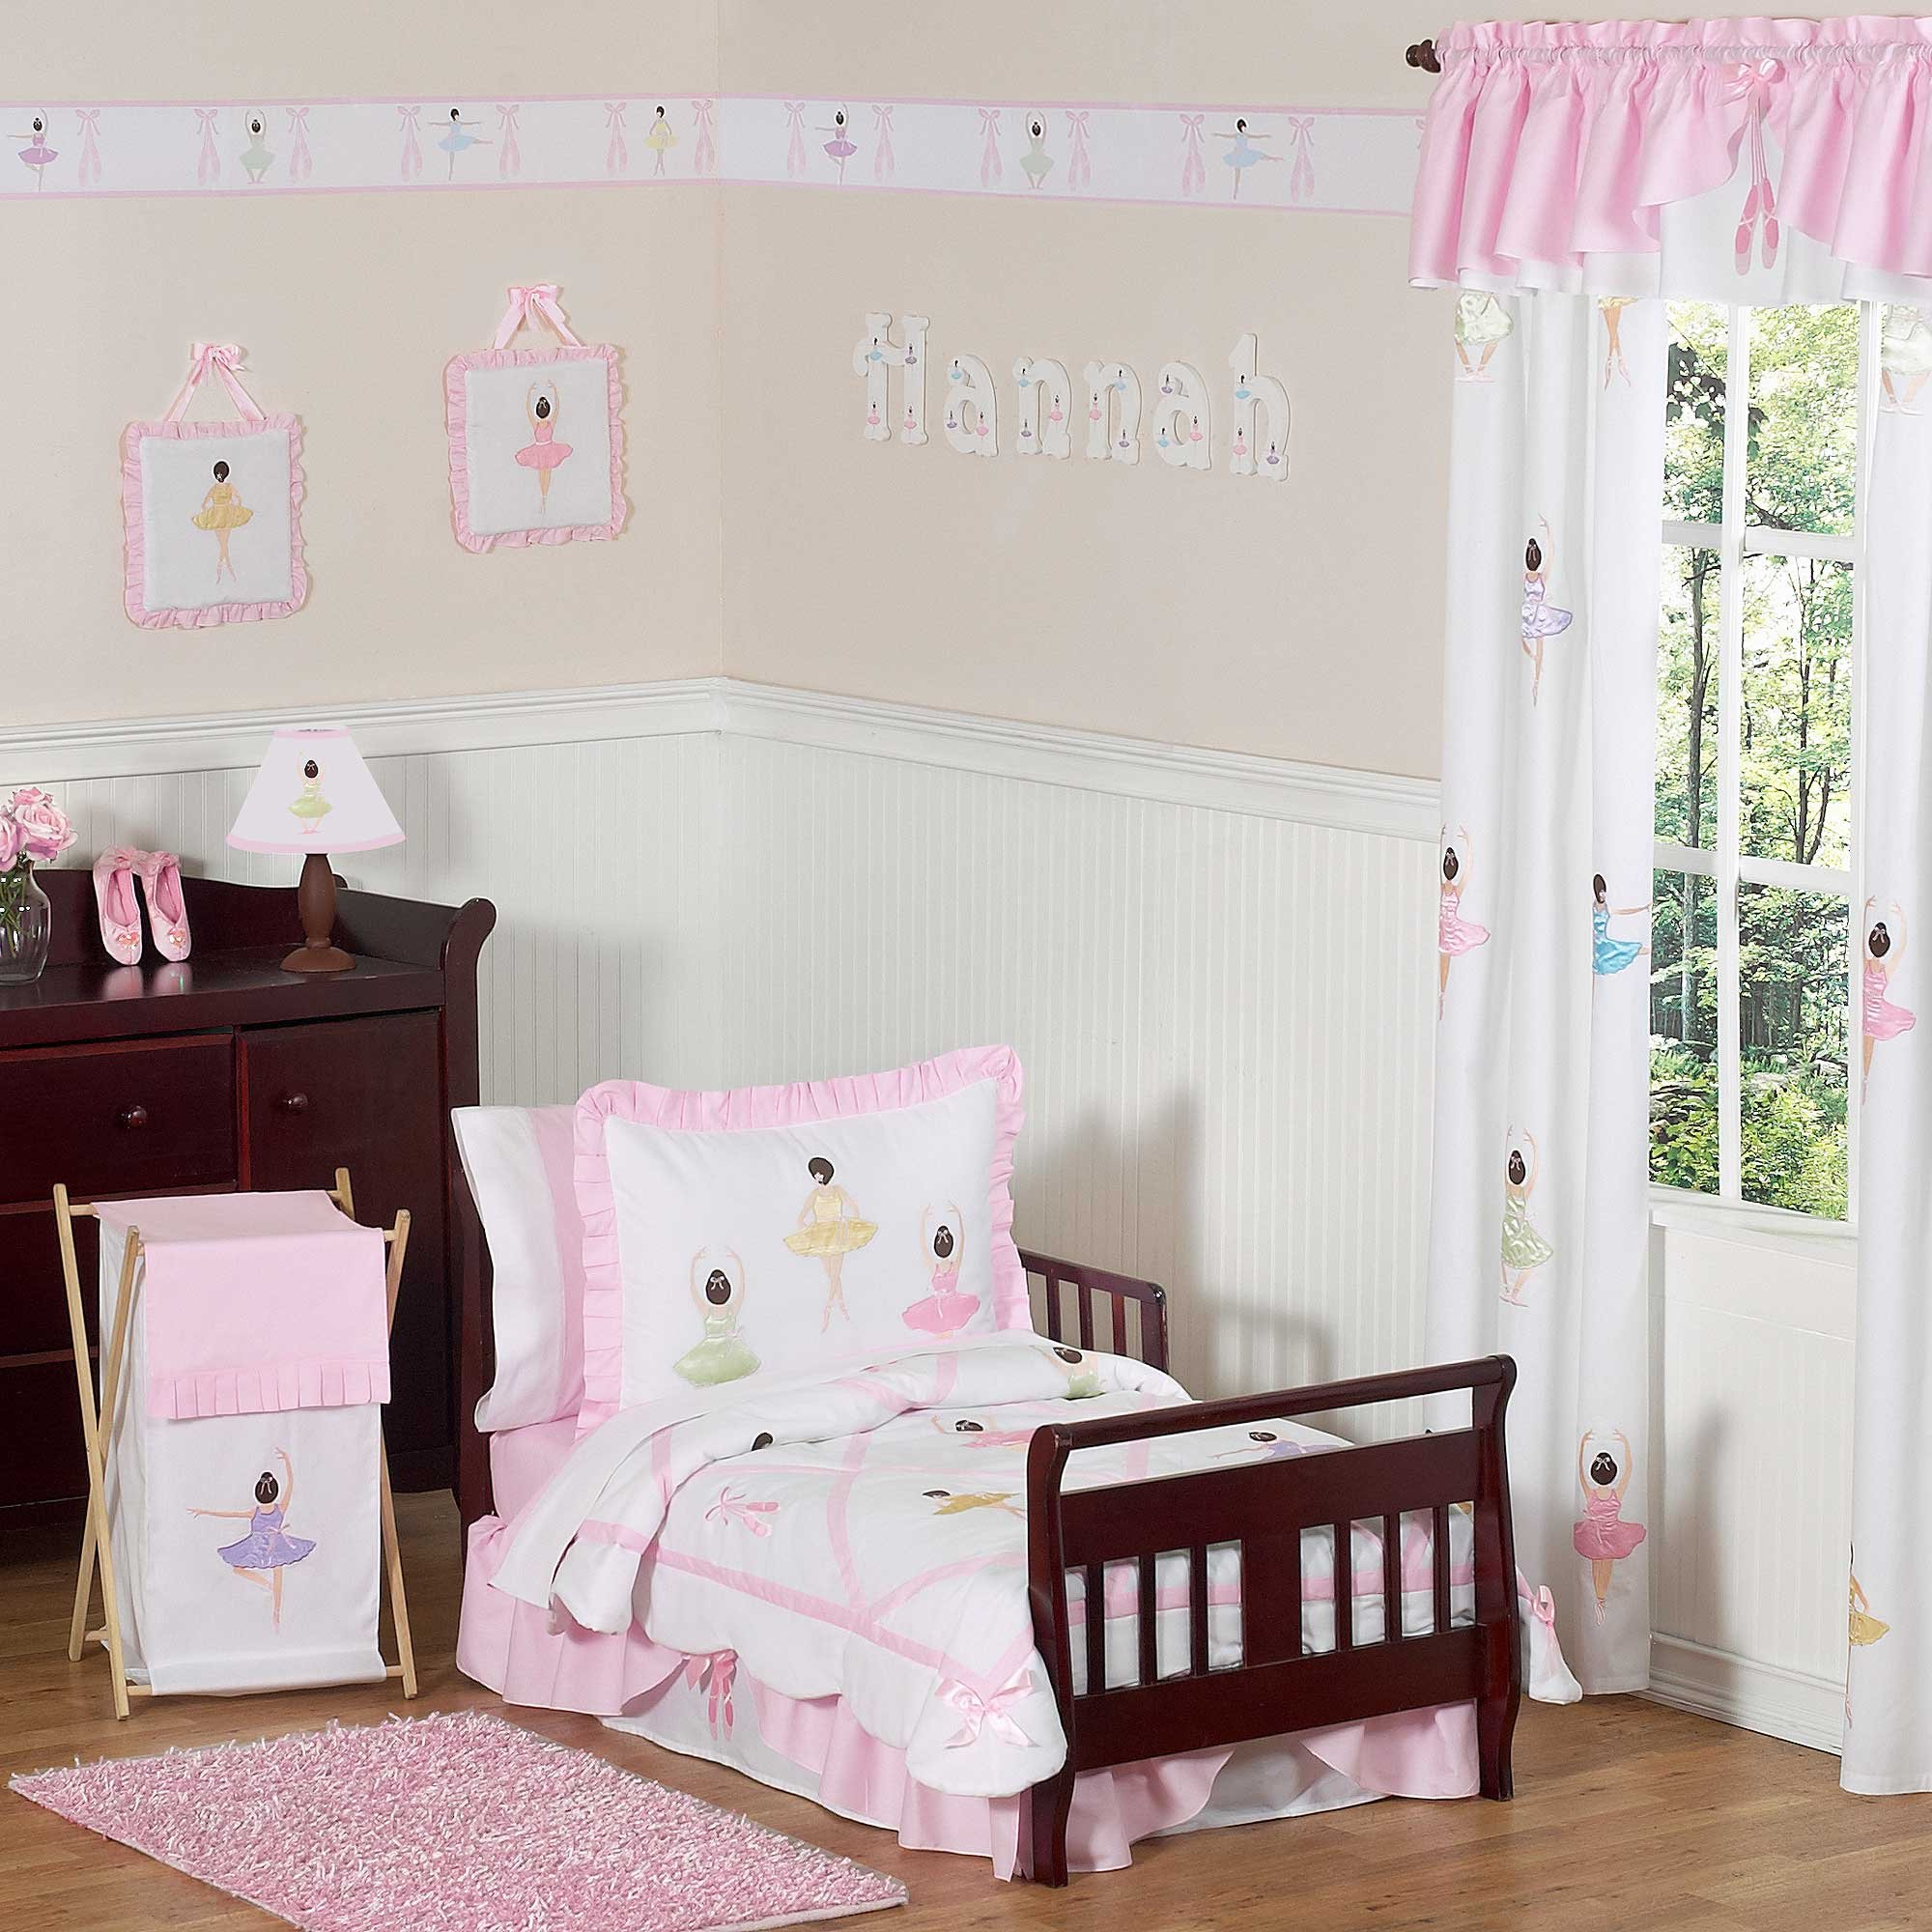 Sweet Jojo Designs 5-Piece Ballet Dancer Ballerina Toddler Girl Bedding Set by Sweet Jojo Designs